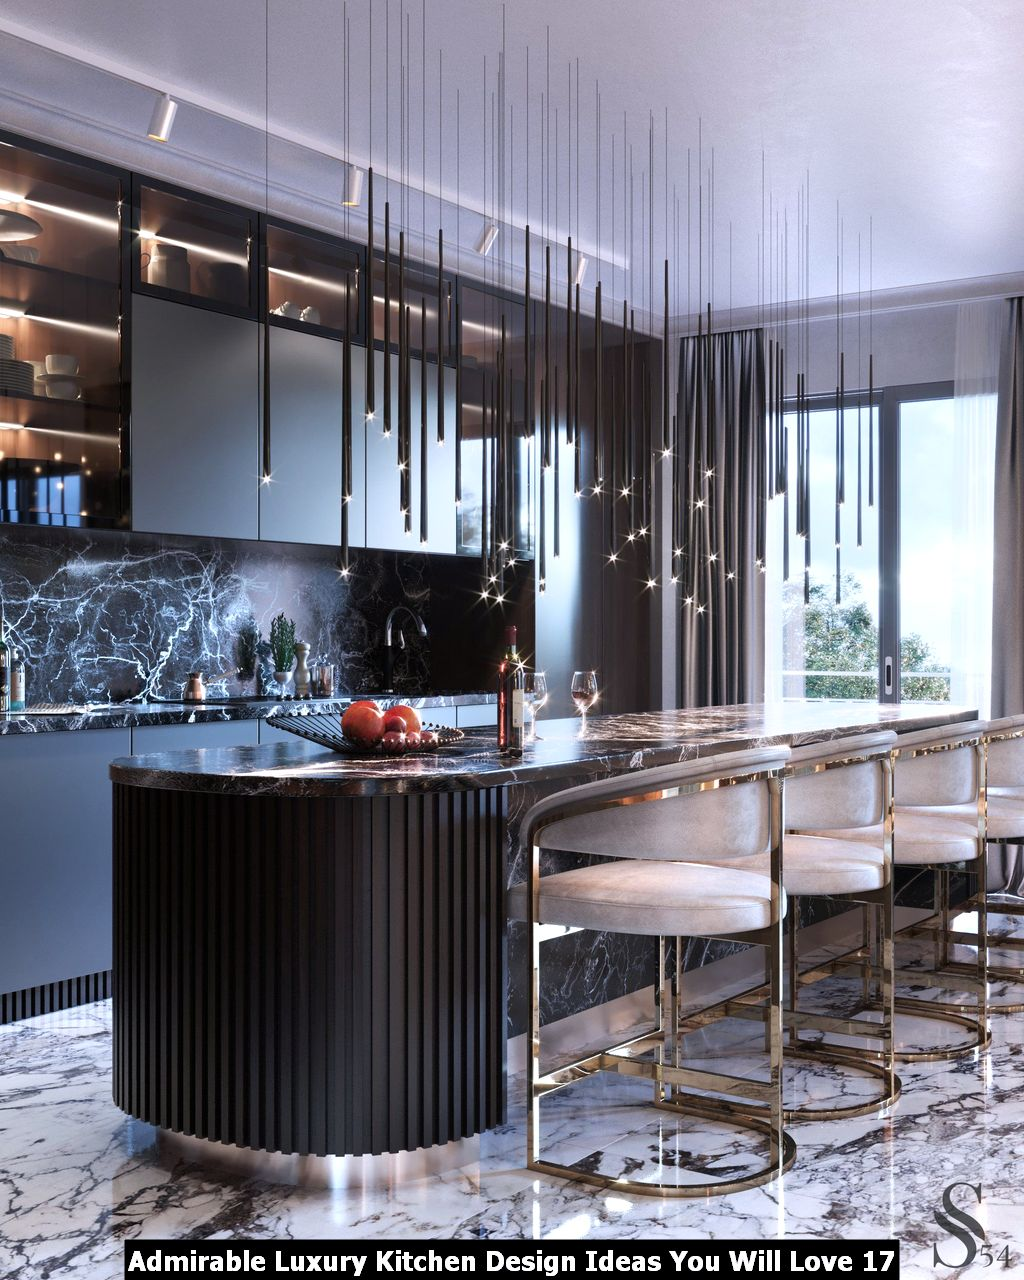 Admirable Luxury Kitchen Design Ideas You Will Love 17